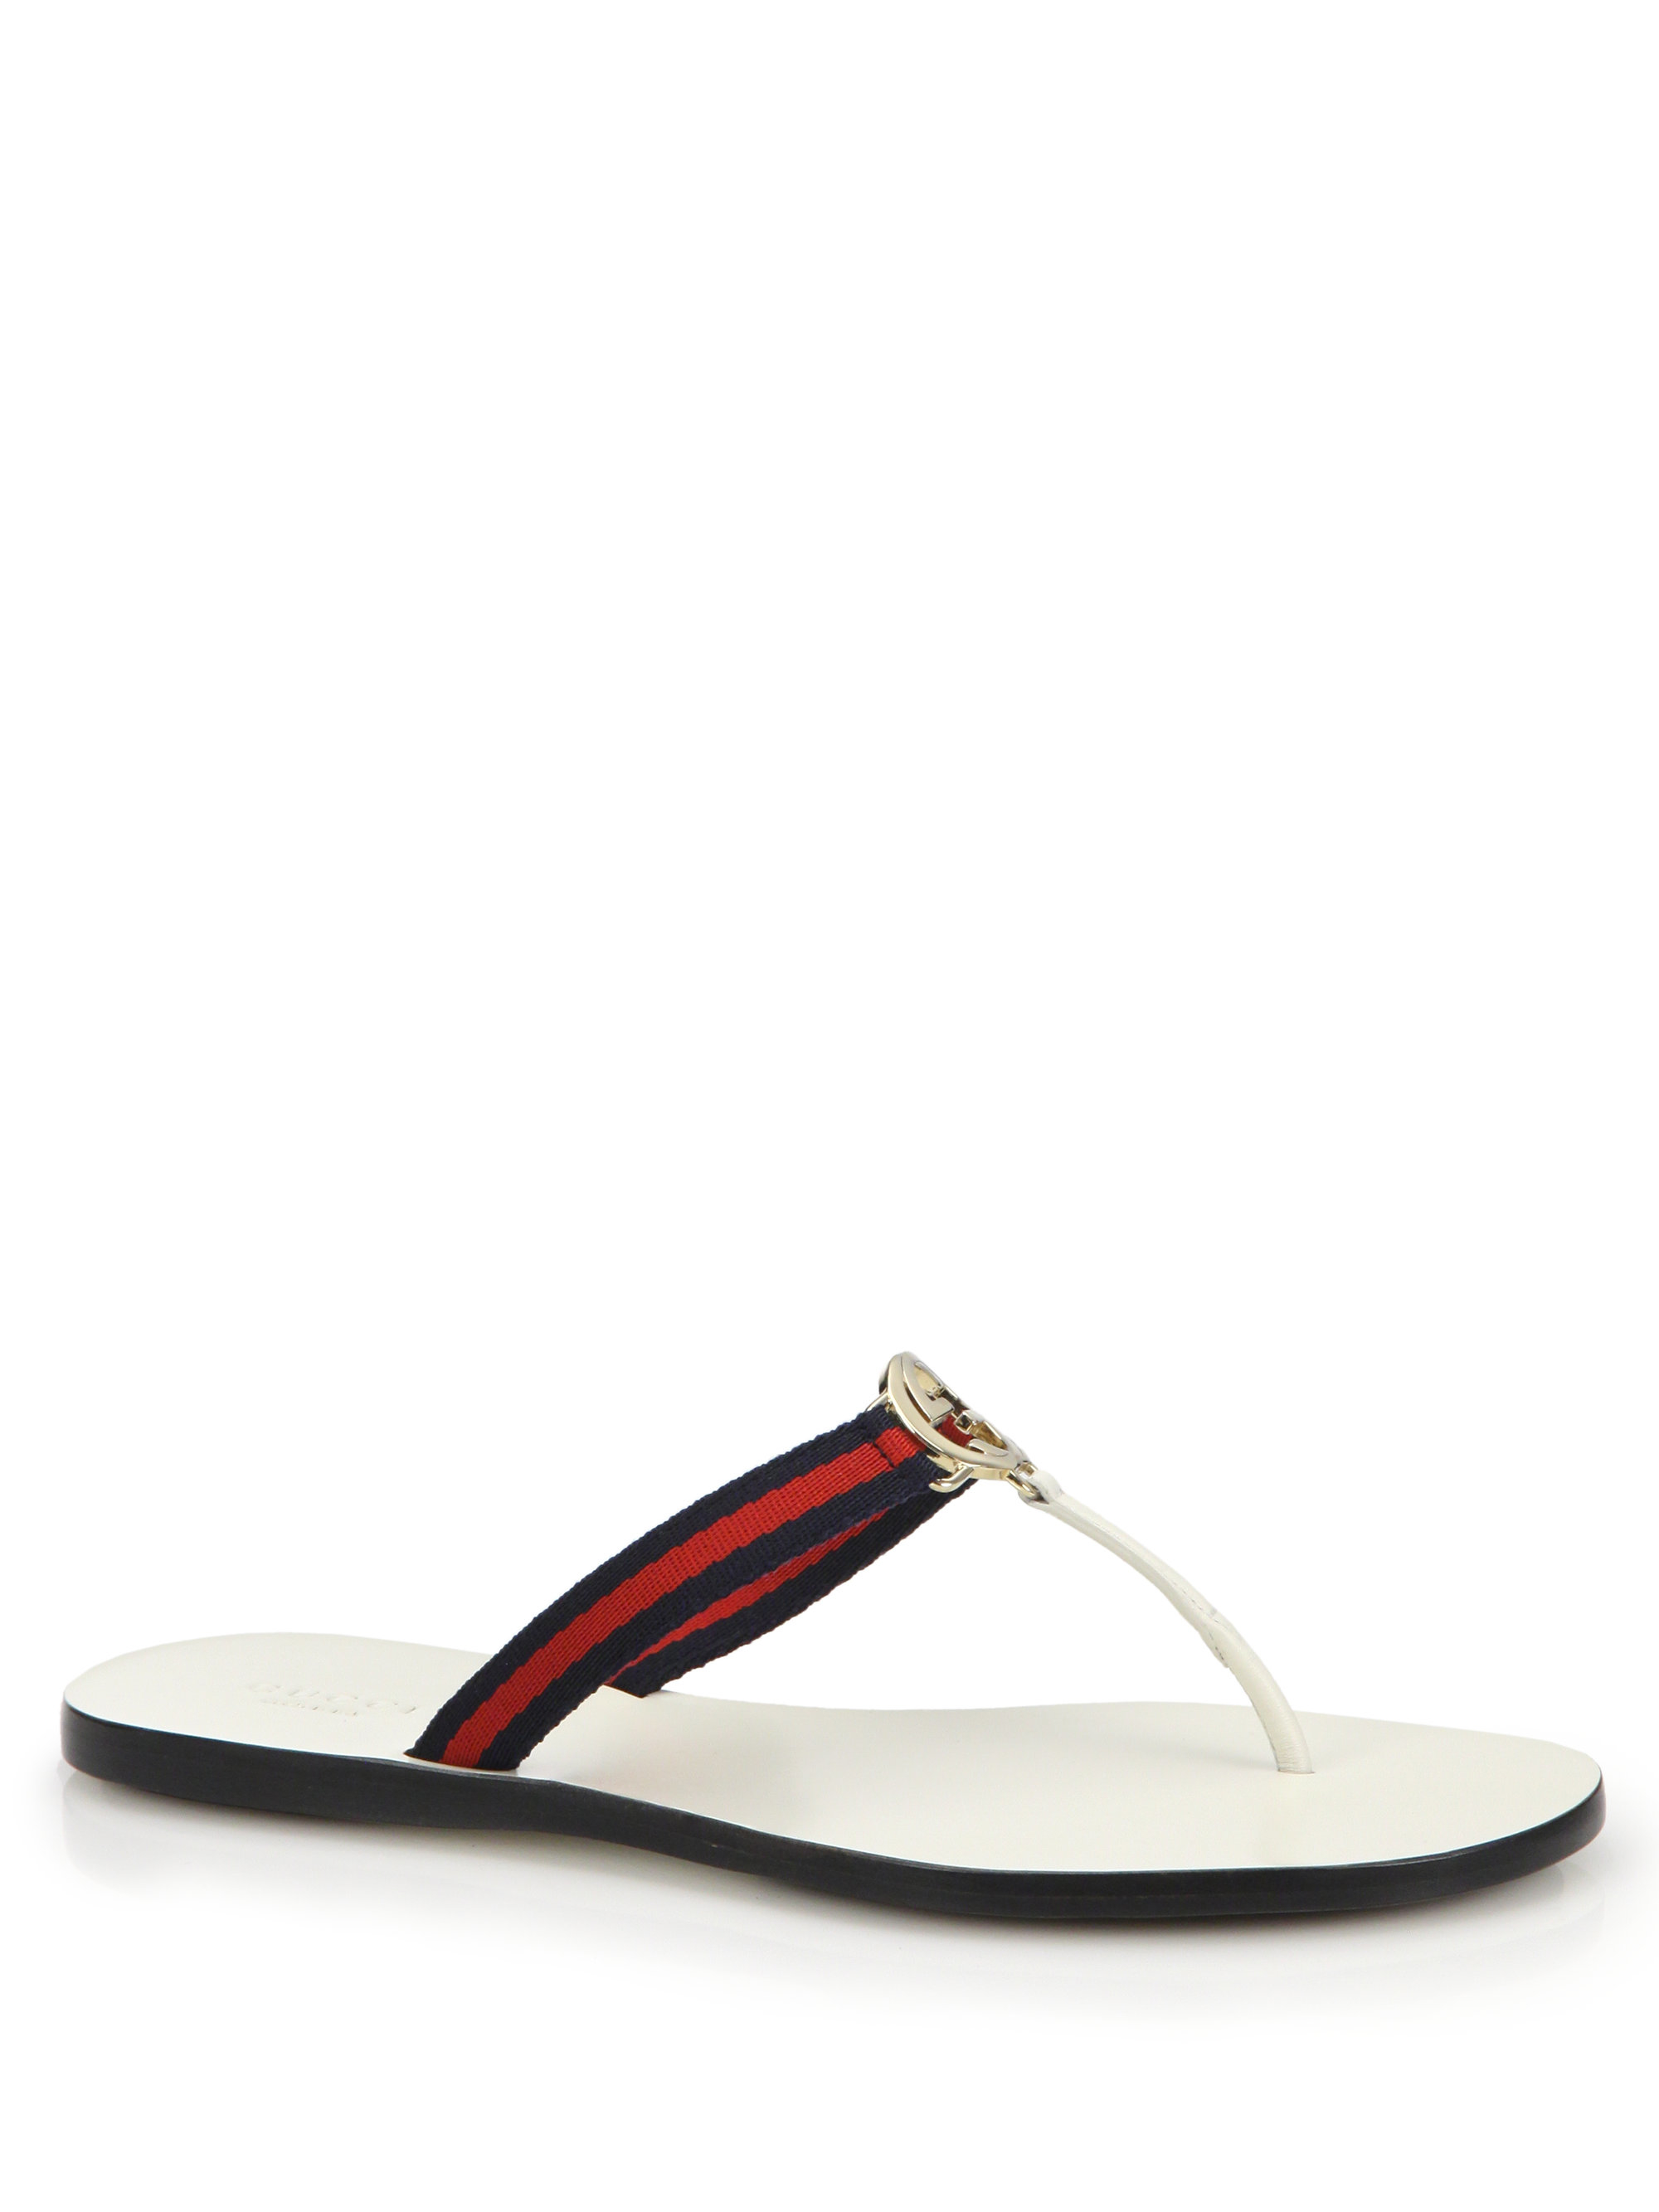 435e64cd11e0 Lyst - Gucci New Gg Canvas   Leather Signature Thong Sandals in Blue